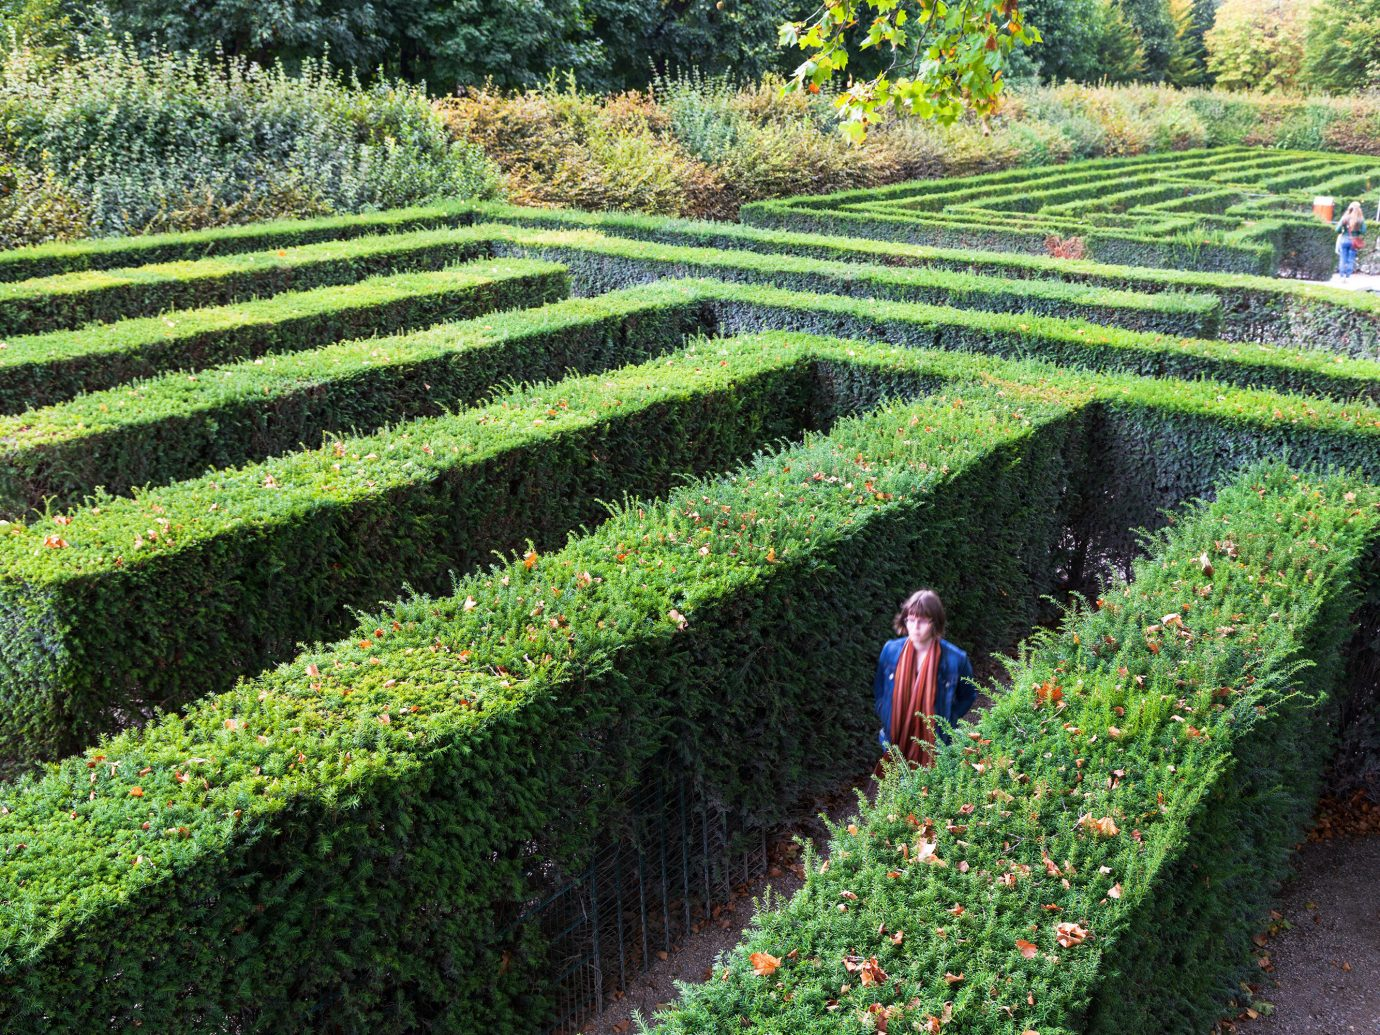 Trip Ideas grass outdoor agriculture botany field Garden plantation lawn green shrub flower soil hedge tea annual plant plant surrounded lush